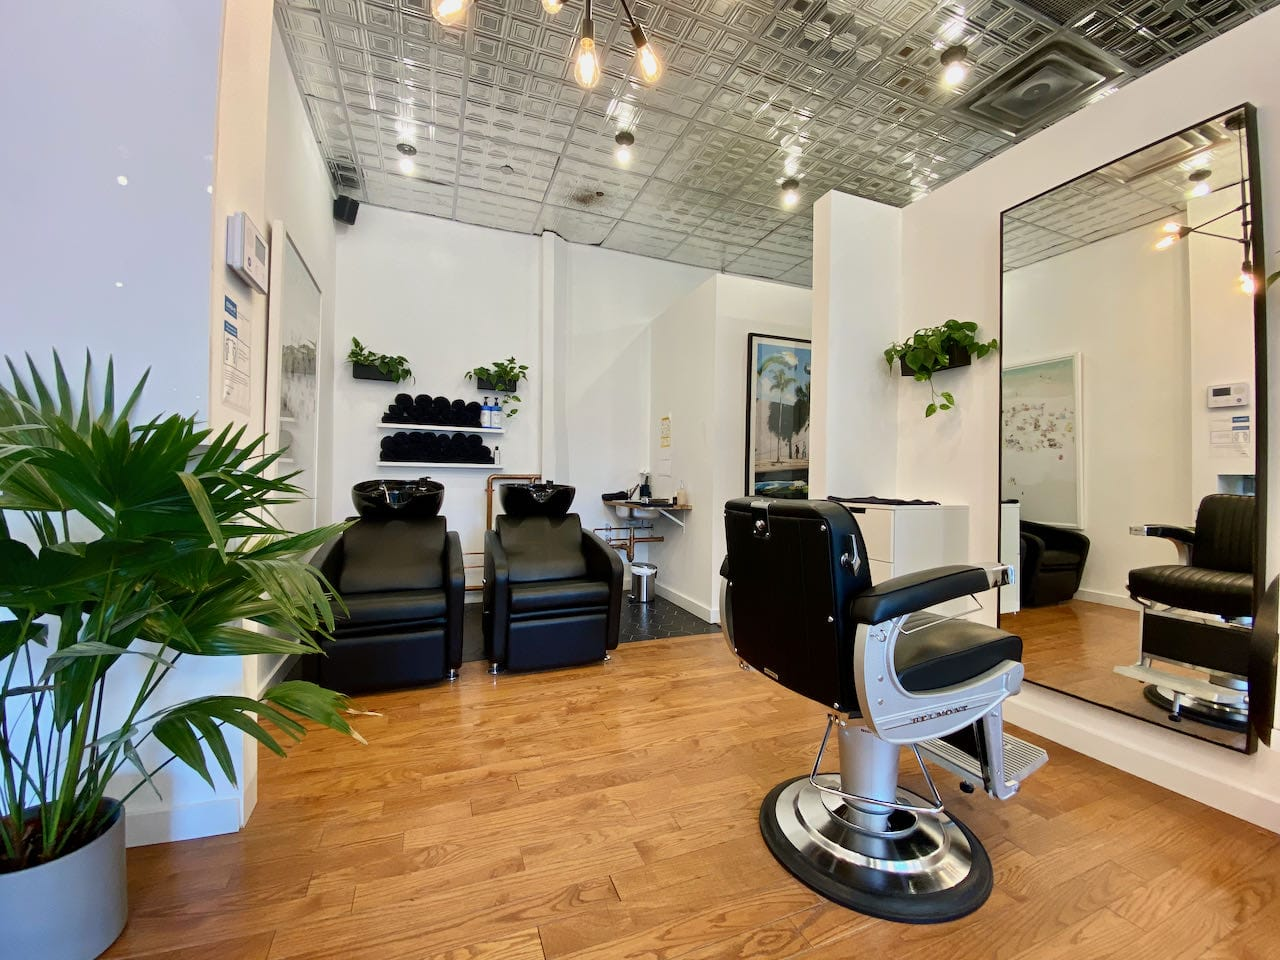 Bruno Rosales is a French-inspired downtown Toronto barber shop offering facials, pedicures and more!